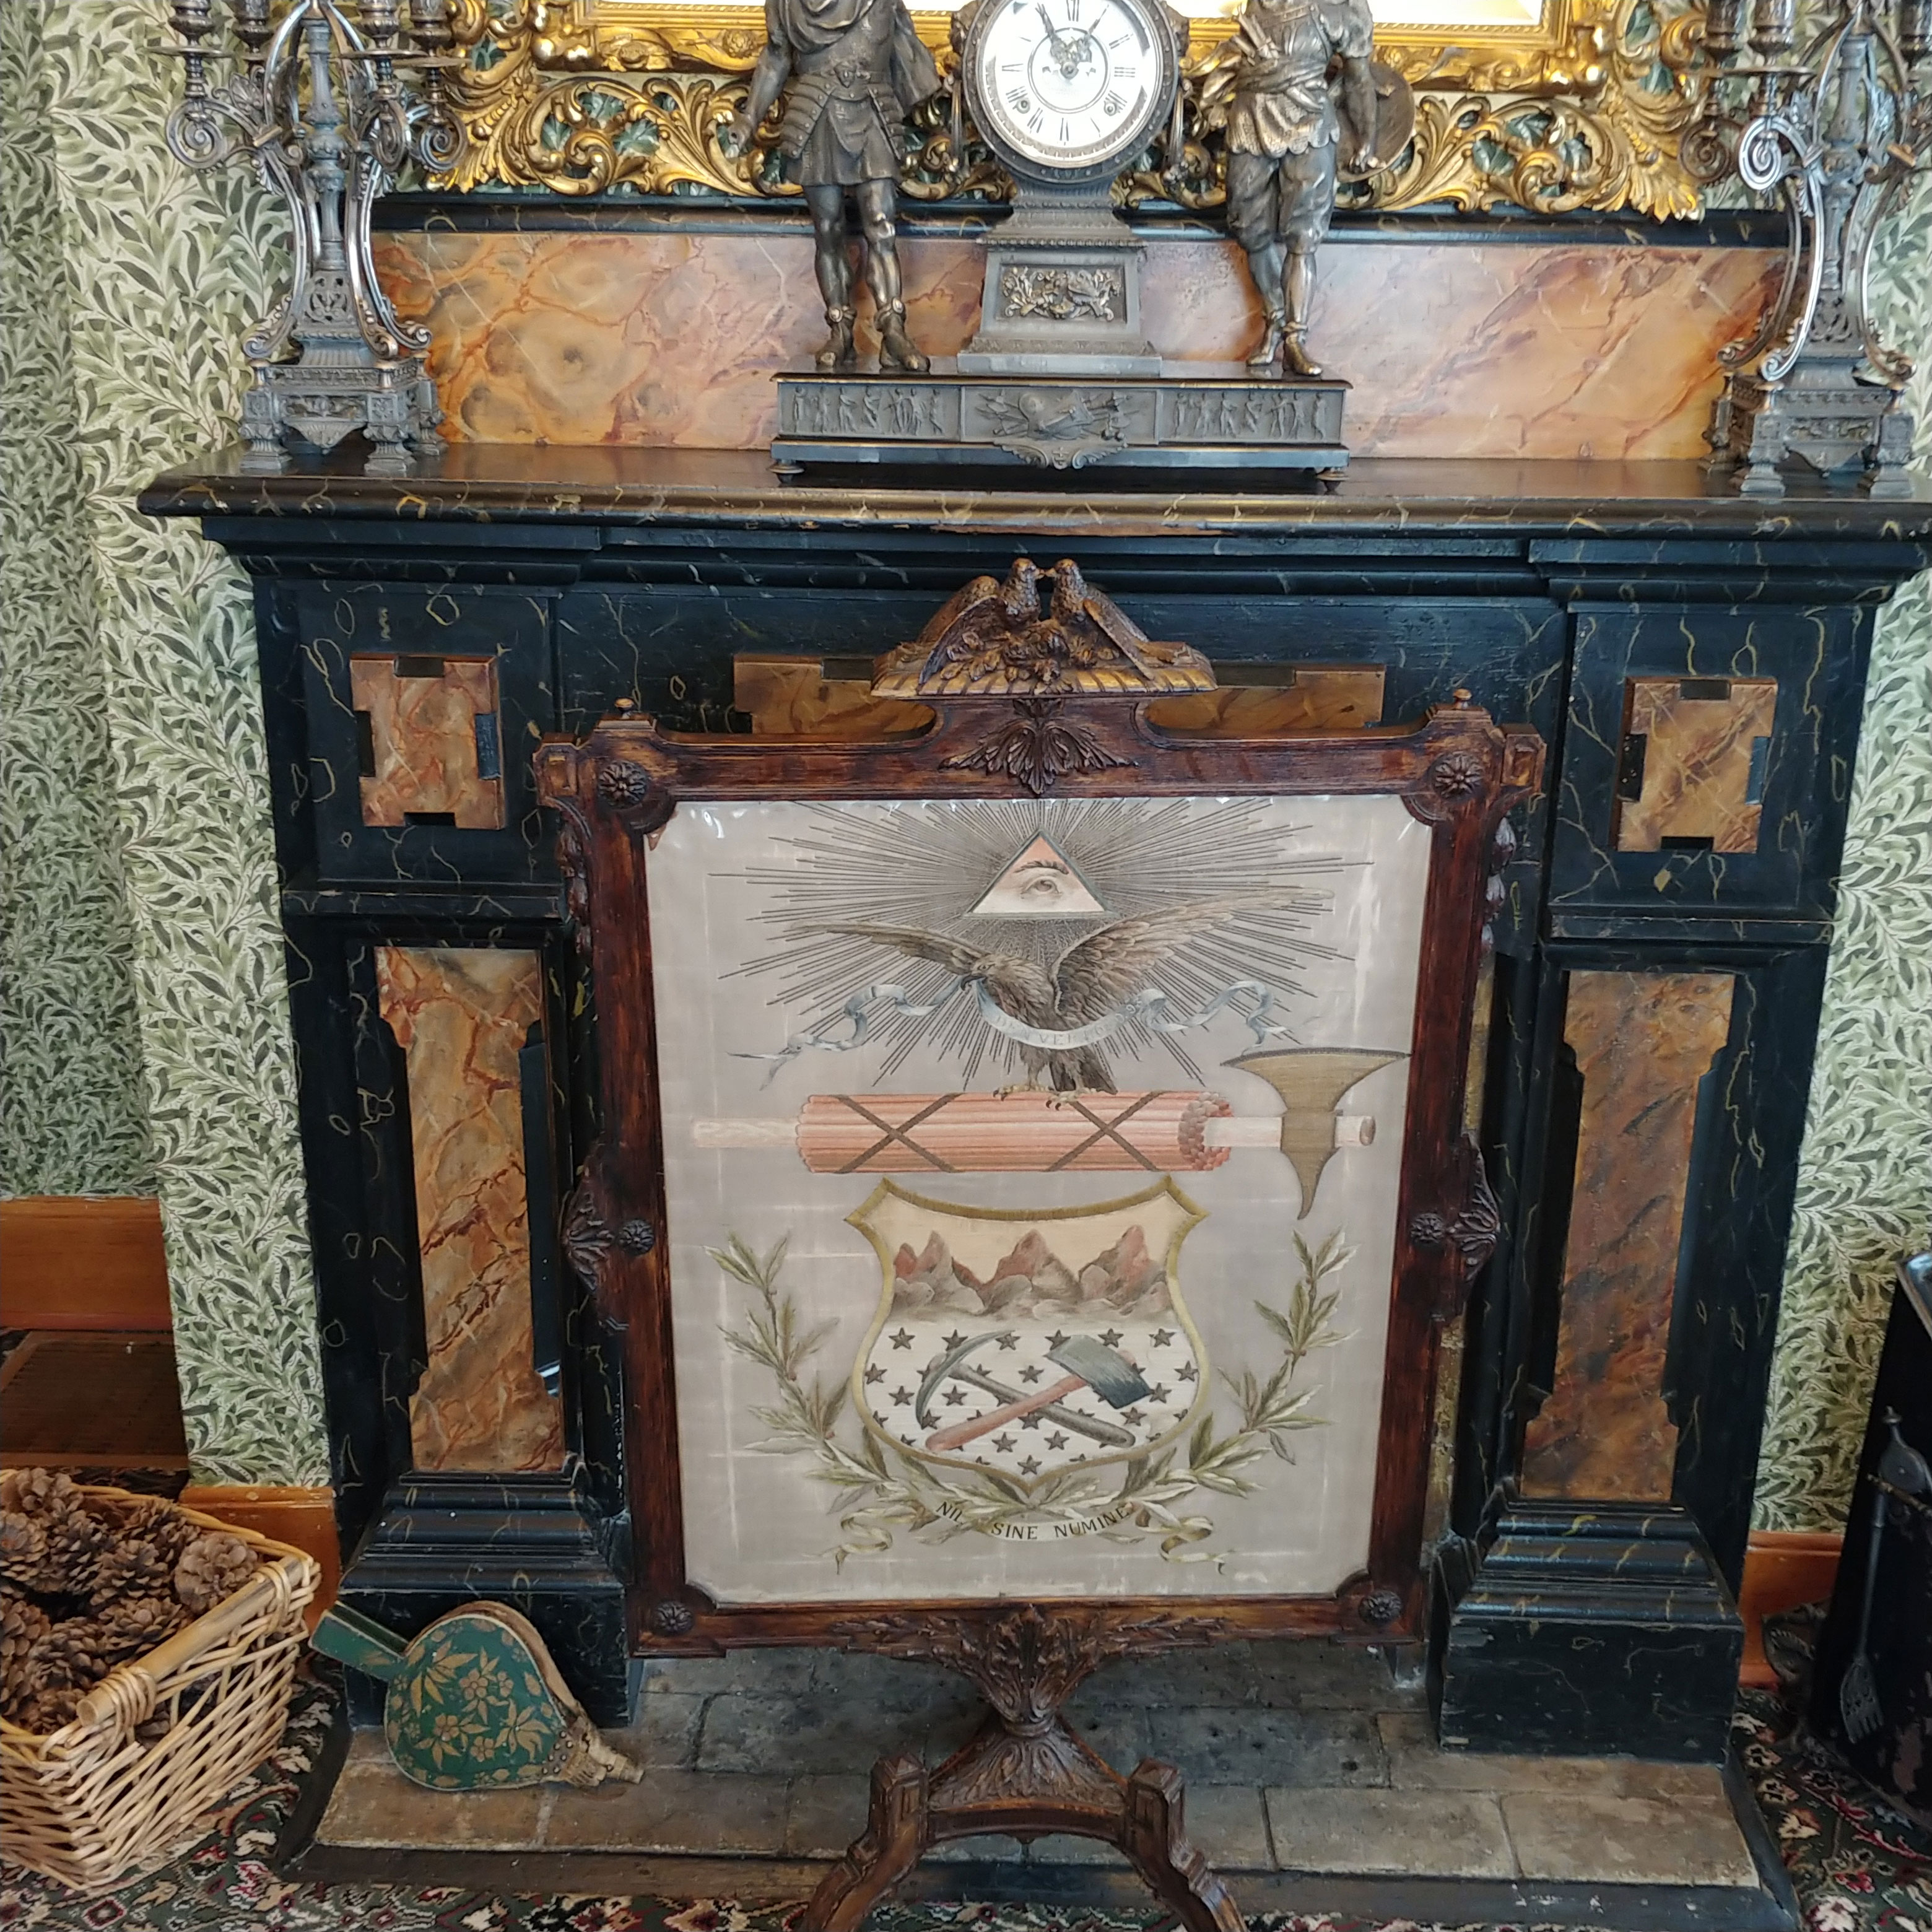 Needlepoint and fireplace at Healy House